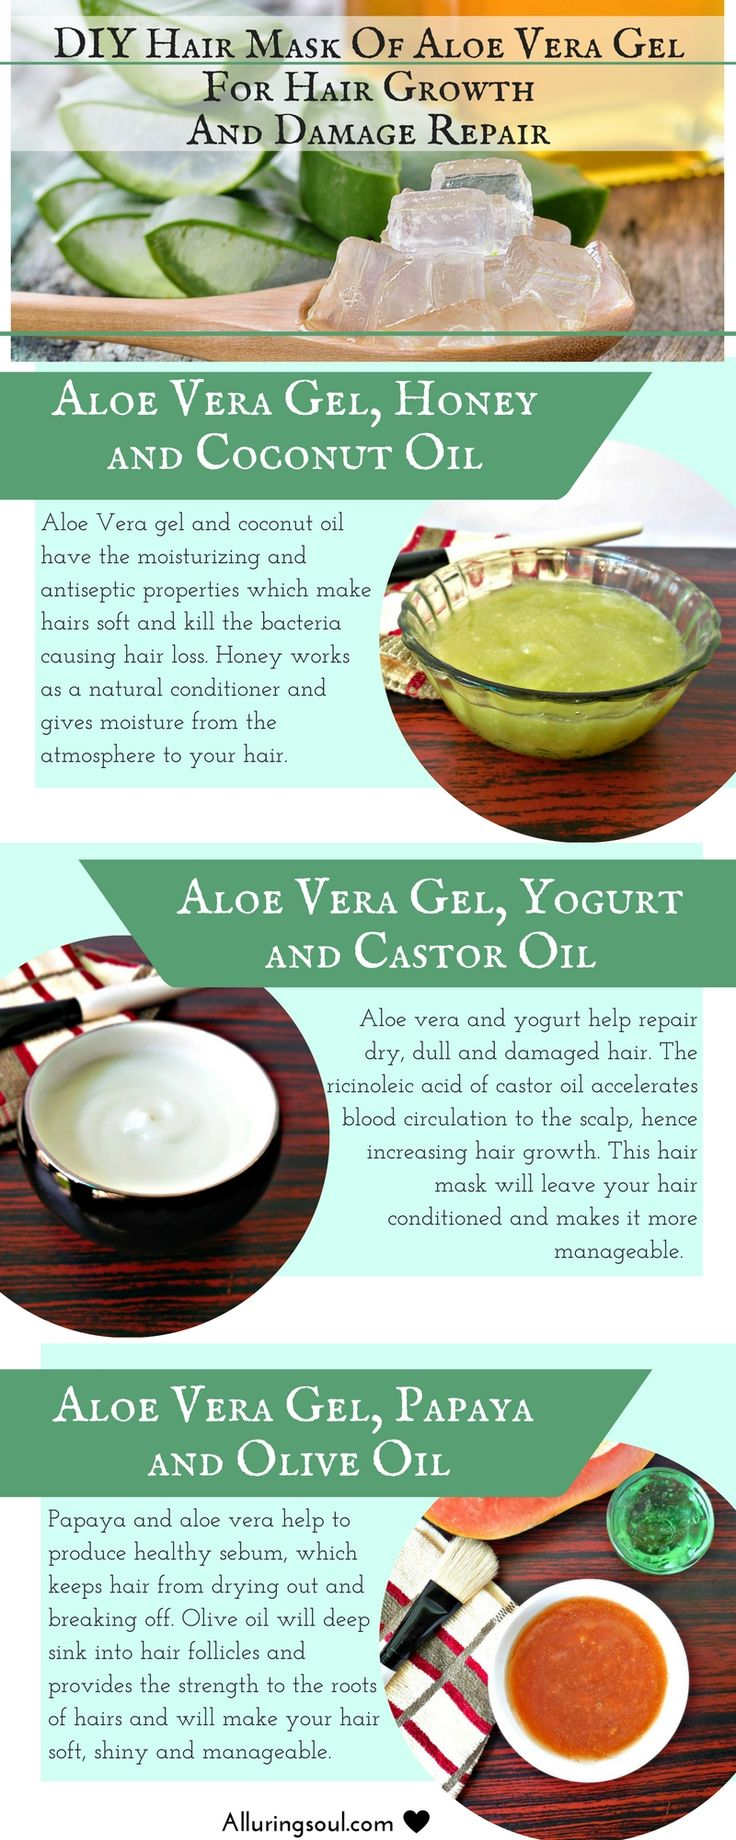 Apply hair mask of aloe vera gel which  promotes hair growth, repairs damaged hair etc. Aloe vera hair masks become more effective when another natural ingredients are mixed with it like castor oil, coconut oil, honey, papaya etc.